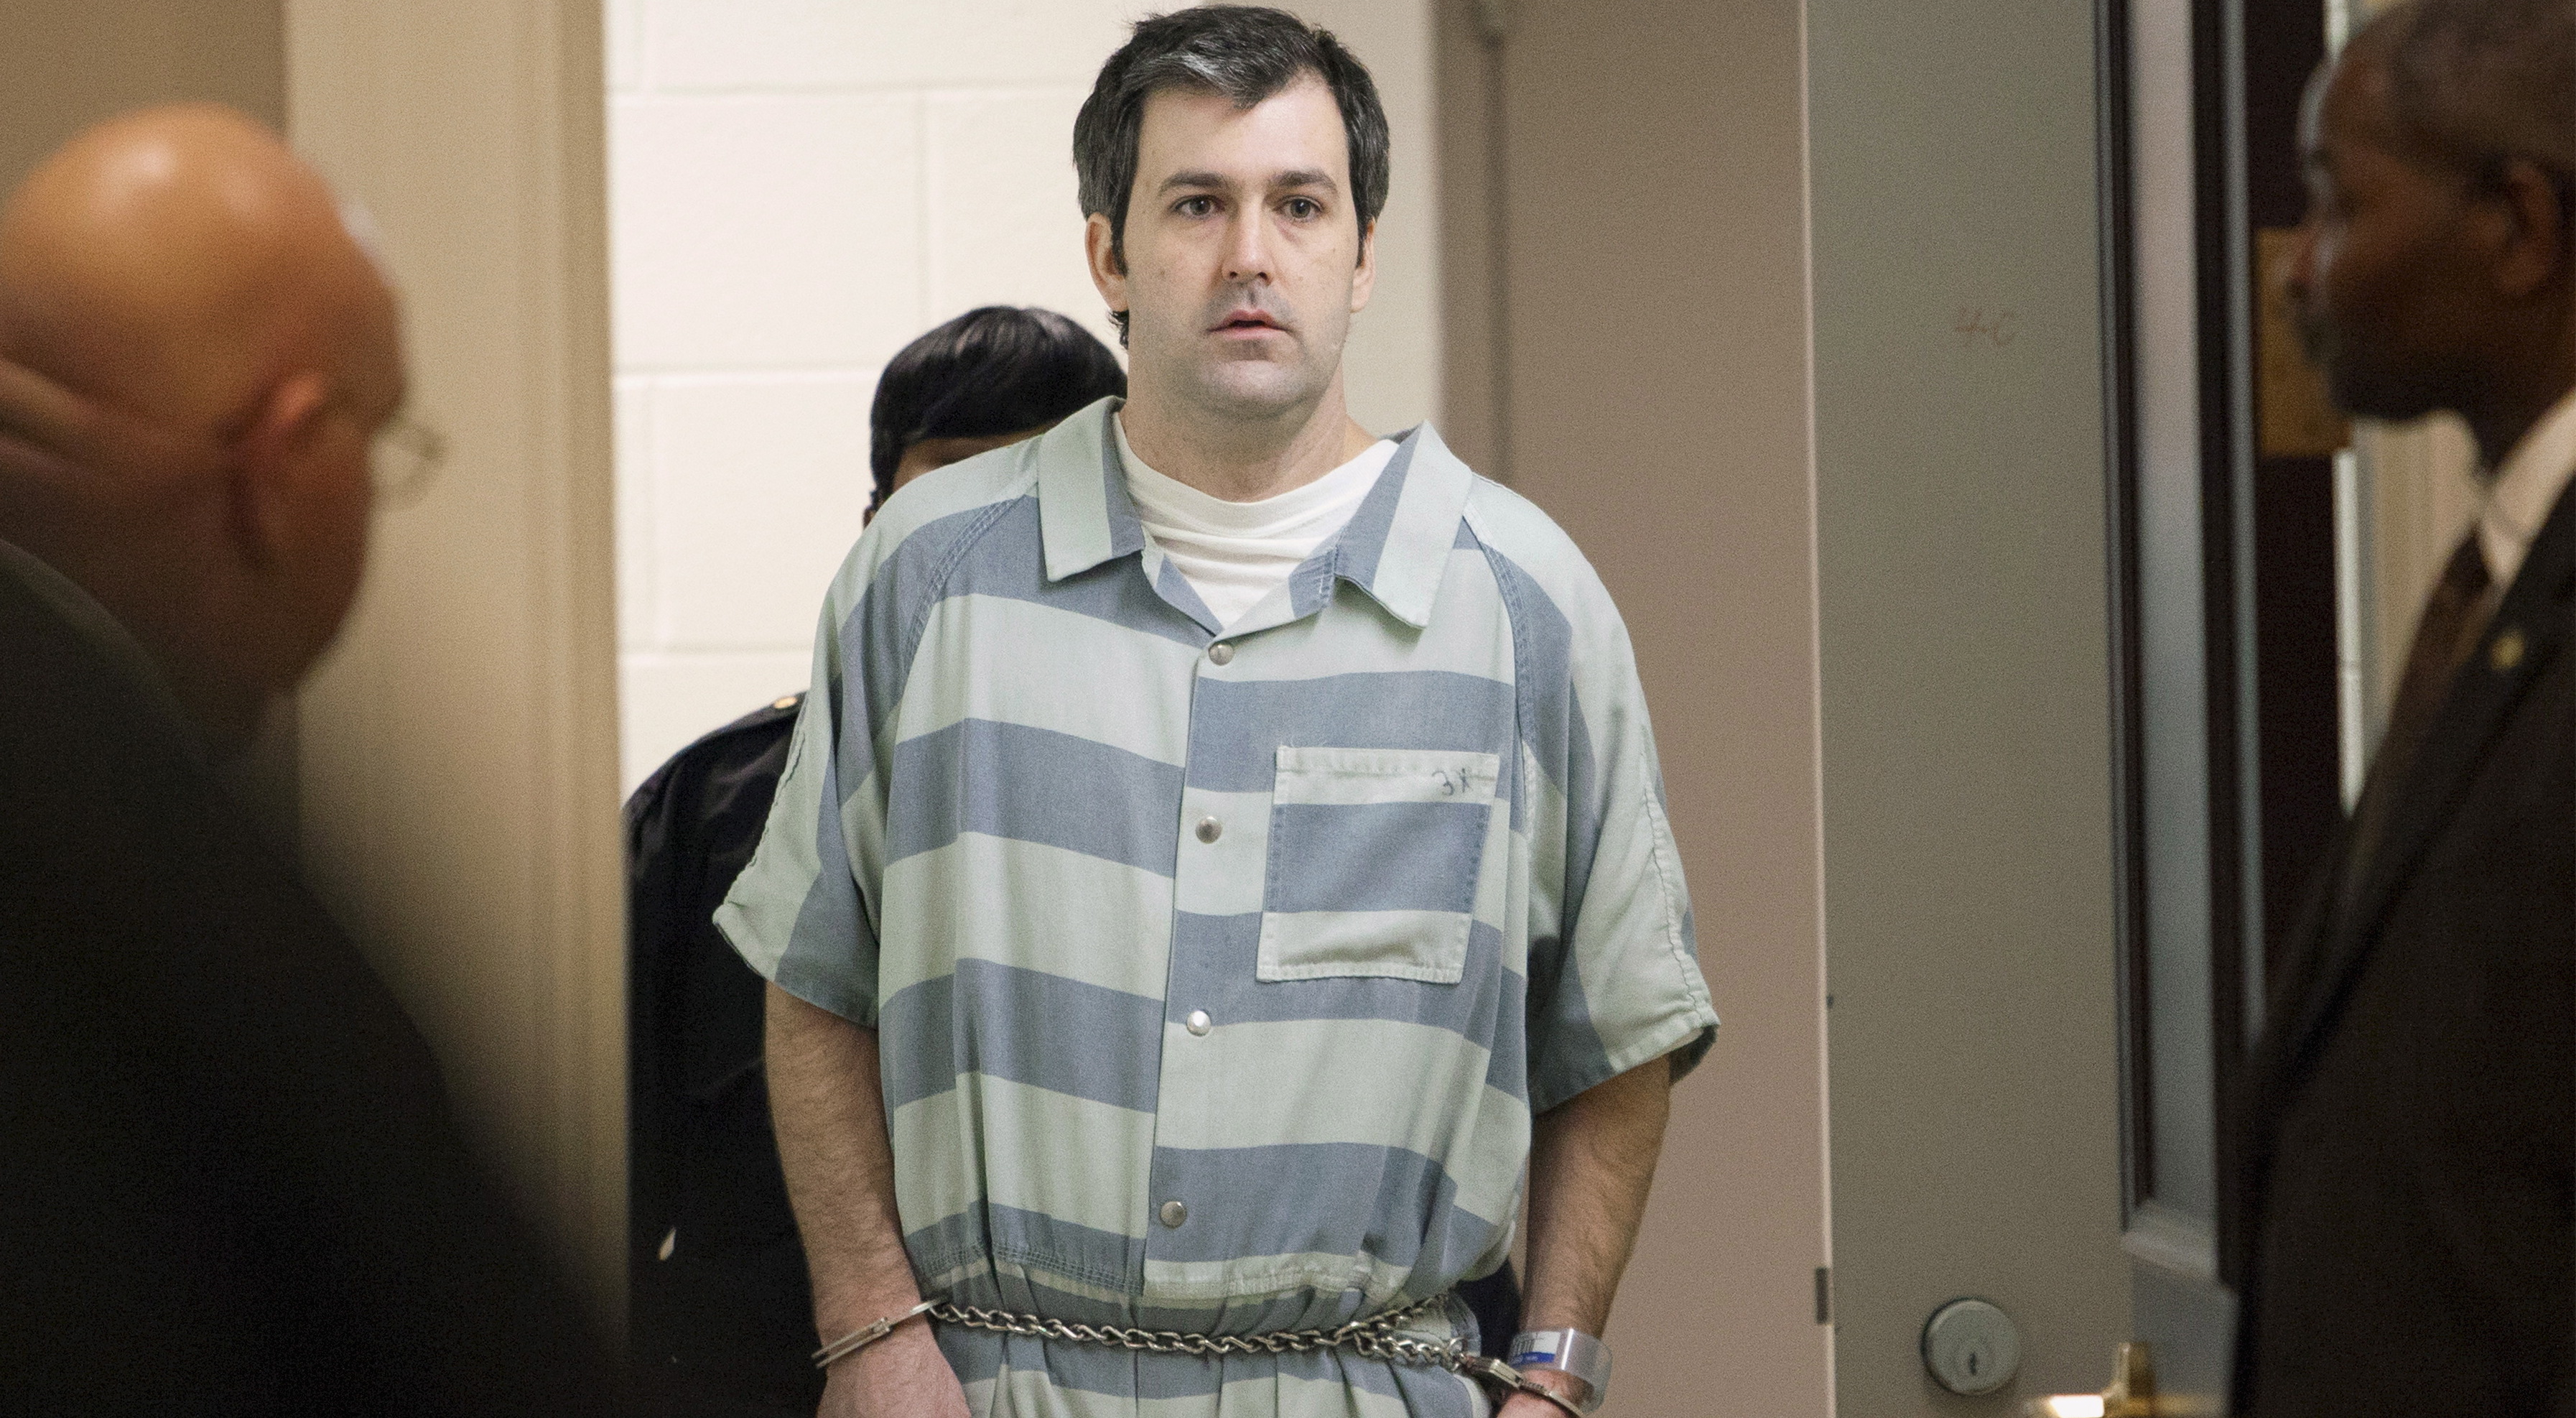 Former police officer Michael Slager walks to the defense table bond hearing in Charleston, South Carolina, United States on September 10, 2015. Slager has been indicted on federal charges in connection with the April 2015 shooting death of black motorist Walter Scott in North Charleston, South Carolina, according to court documents unsealed on May 11, 2016.